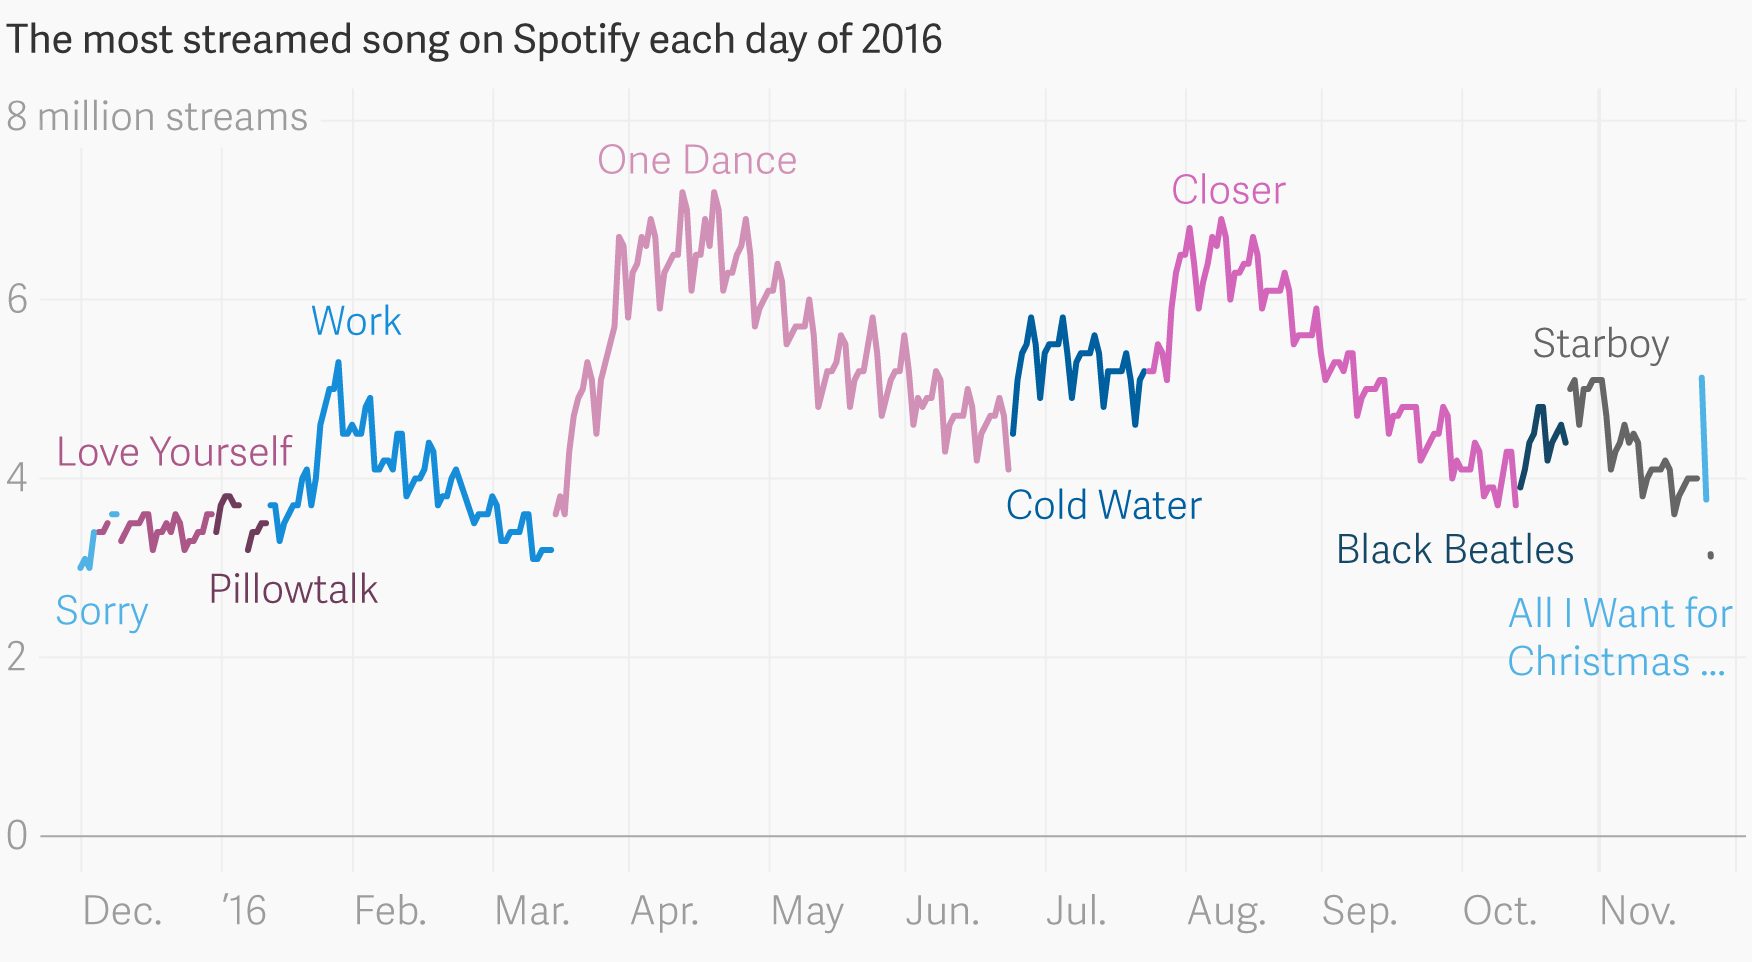 Chart showing most streamed song on Spotify each day of 2016.